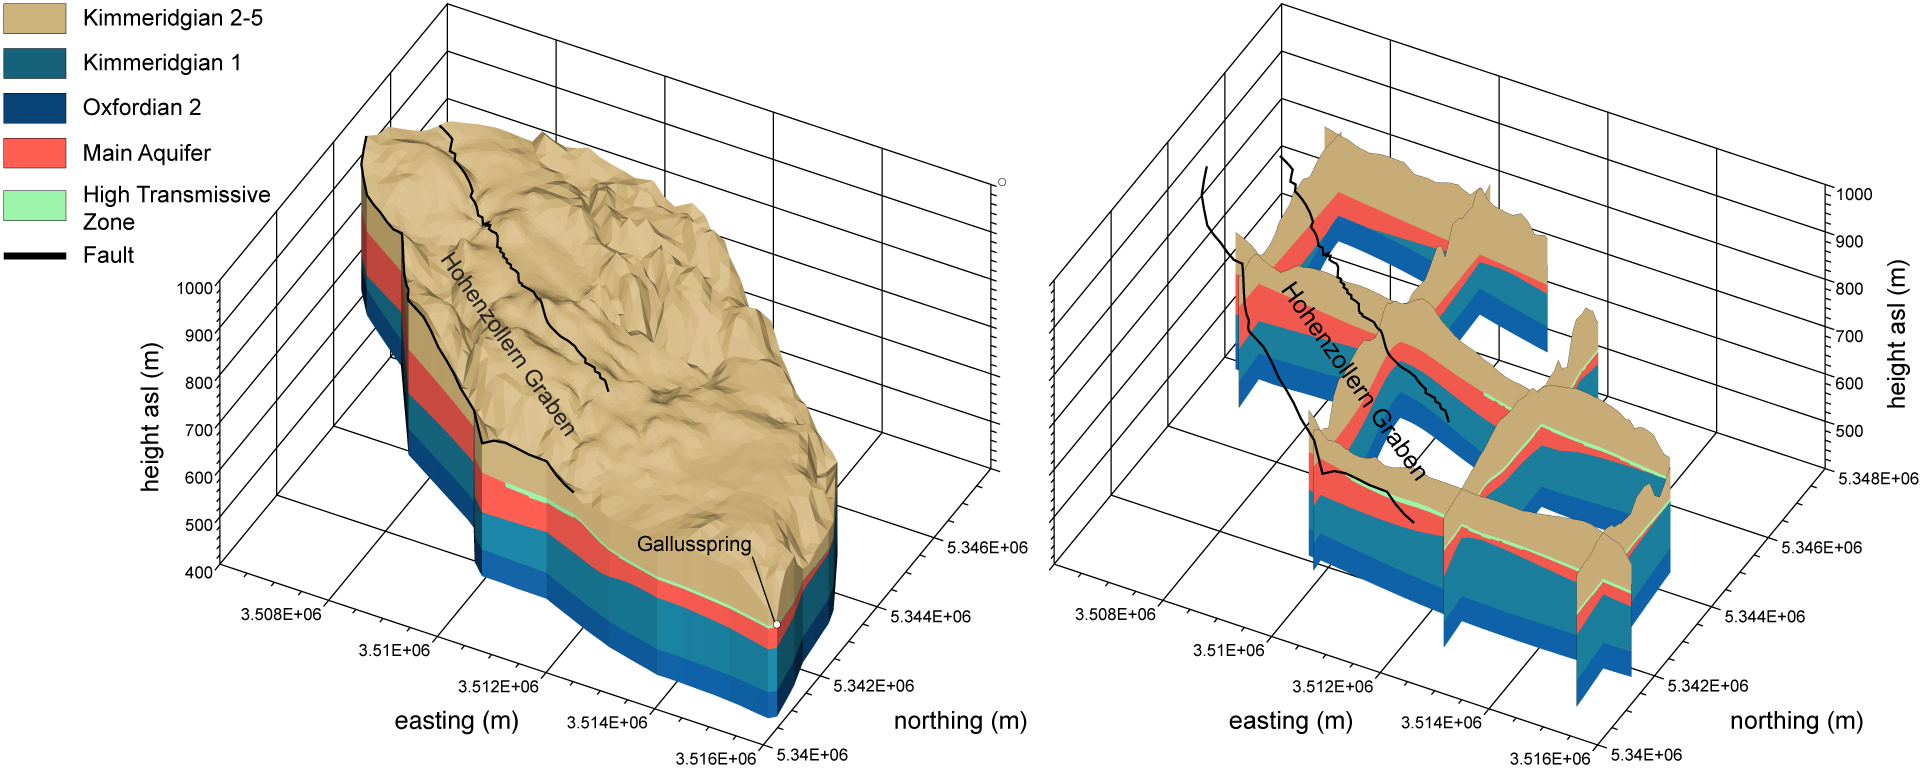 Double-continuum 3D model of the Gallusspring, Germany.